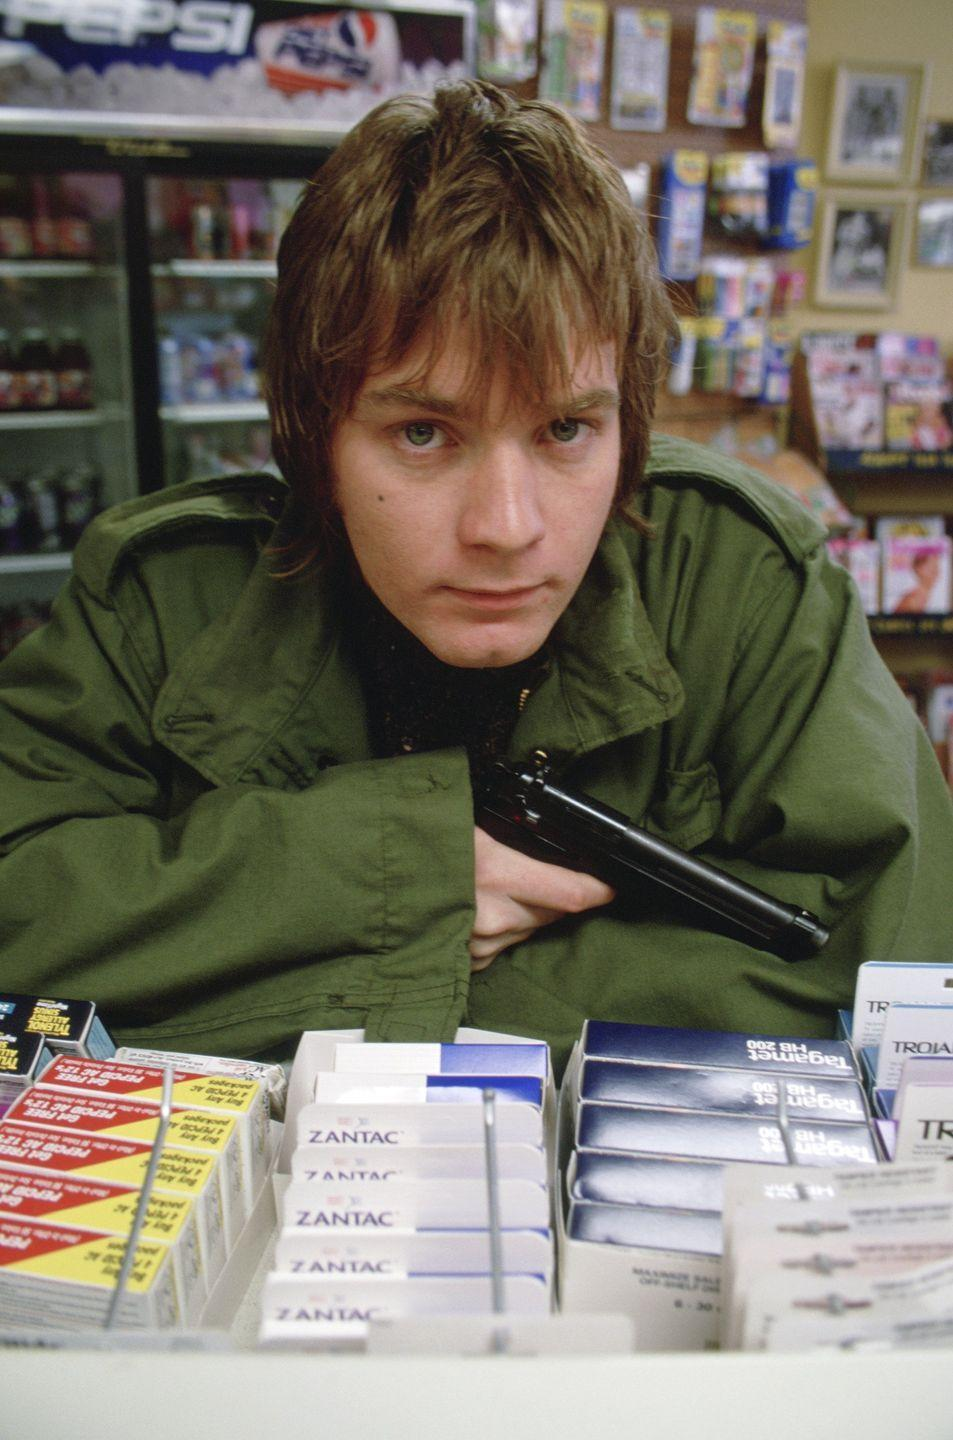 <p>Before his role as Obi-Wan Kenobi was written in the stars, Ewan McGregor guest starred in a particularly tense episode in season 3 of the medical drama. McGregor played Duncan, a gunman in a convenience store robbery who forces Dr. Carol Hathaway (Julianna Margulies) to care for one of the victims. </p>